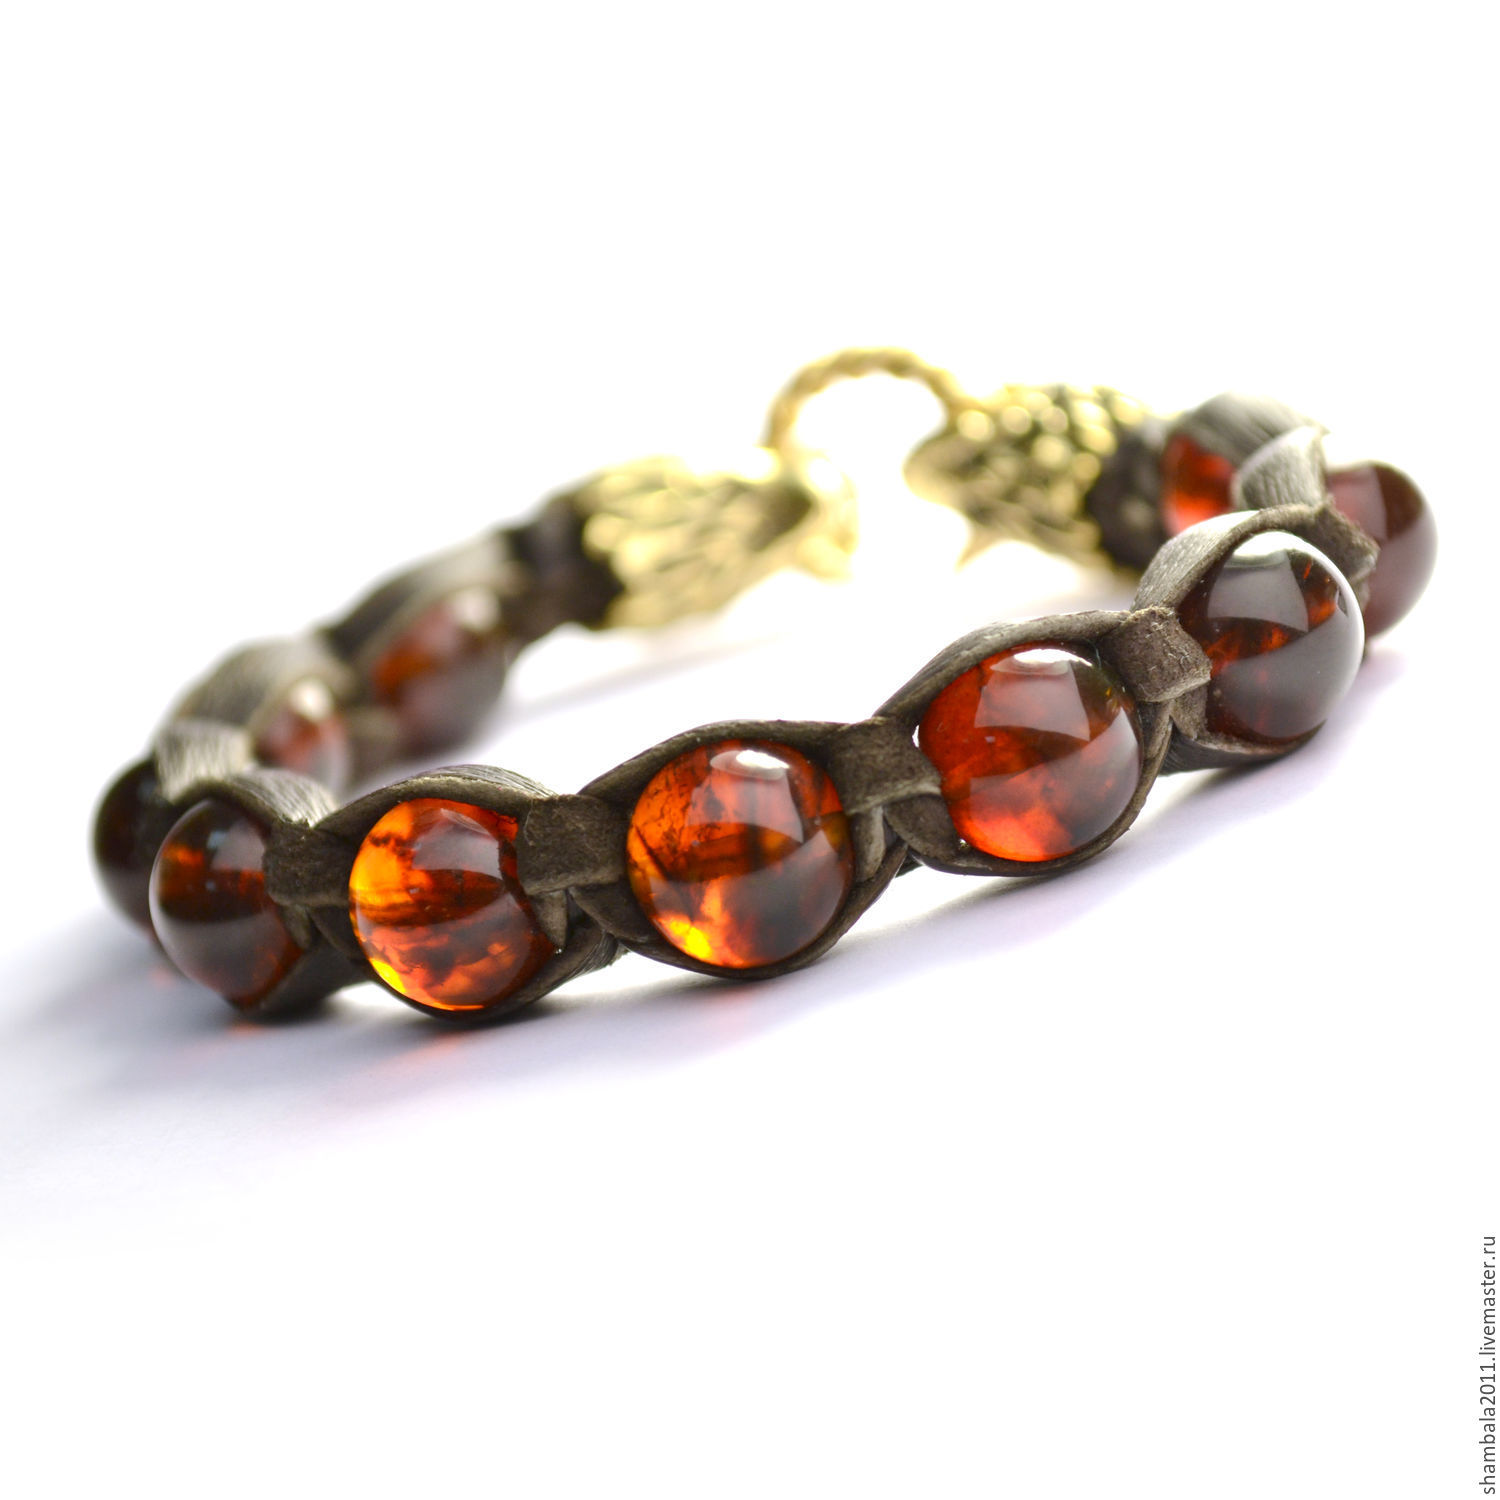 Shamballa bracelet with Baltic amber Wolves. Leather bracelet. Men's bracelet made of amber. Shamballa genuine stones. Men's jewelry. Amber. Mascots. amulets. Charms